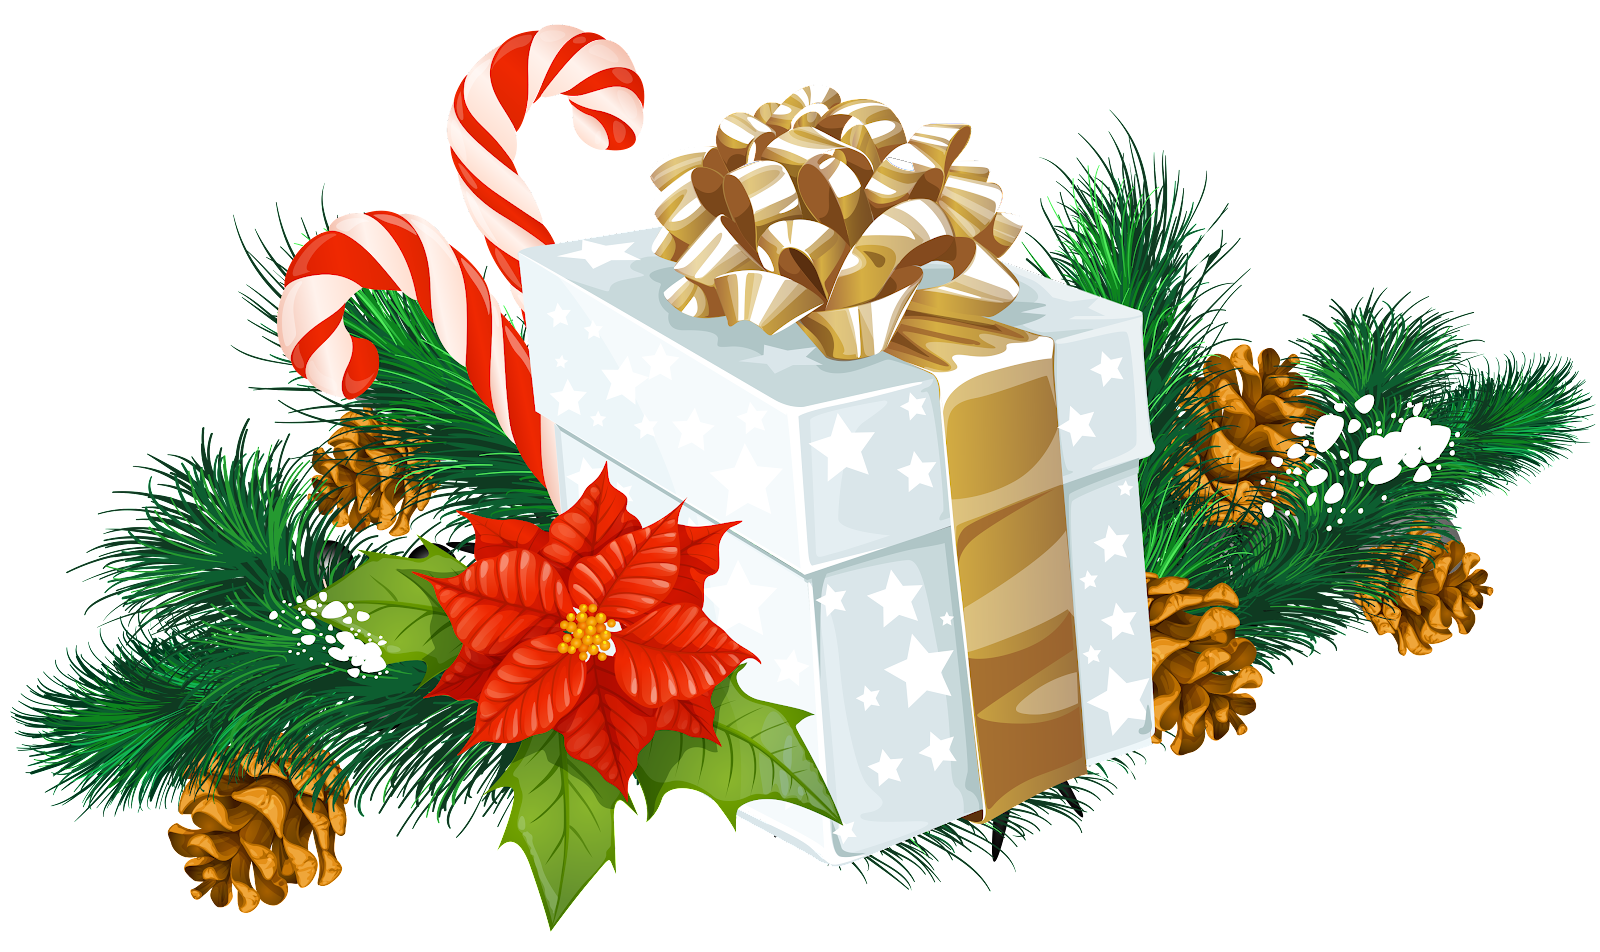 Transparent_Christmas_White_Gift_Decor_PNG_Clipart.png